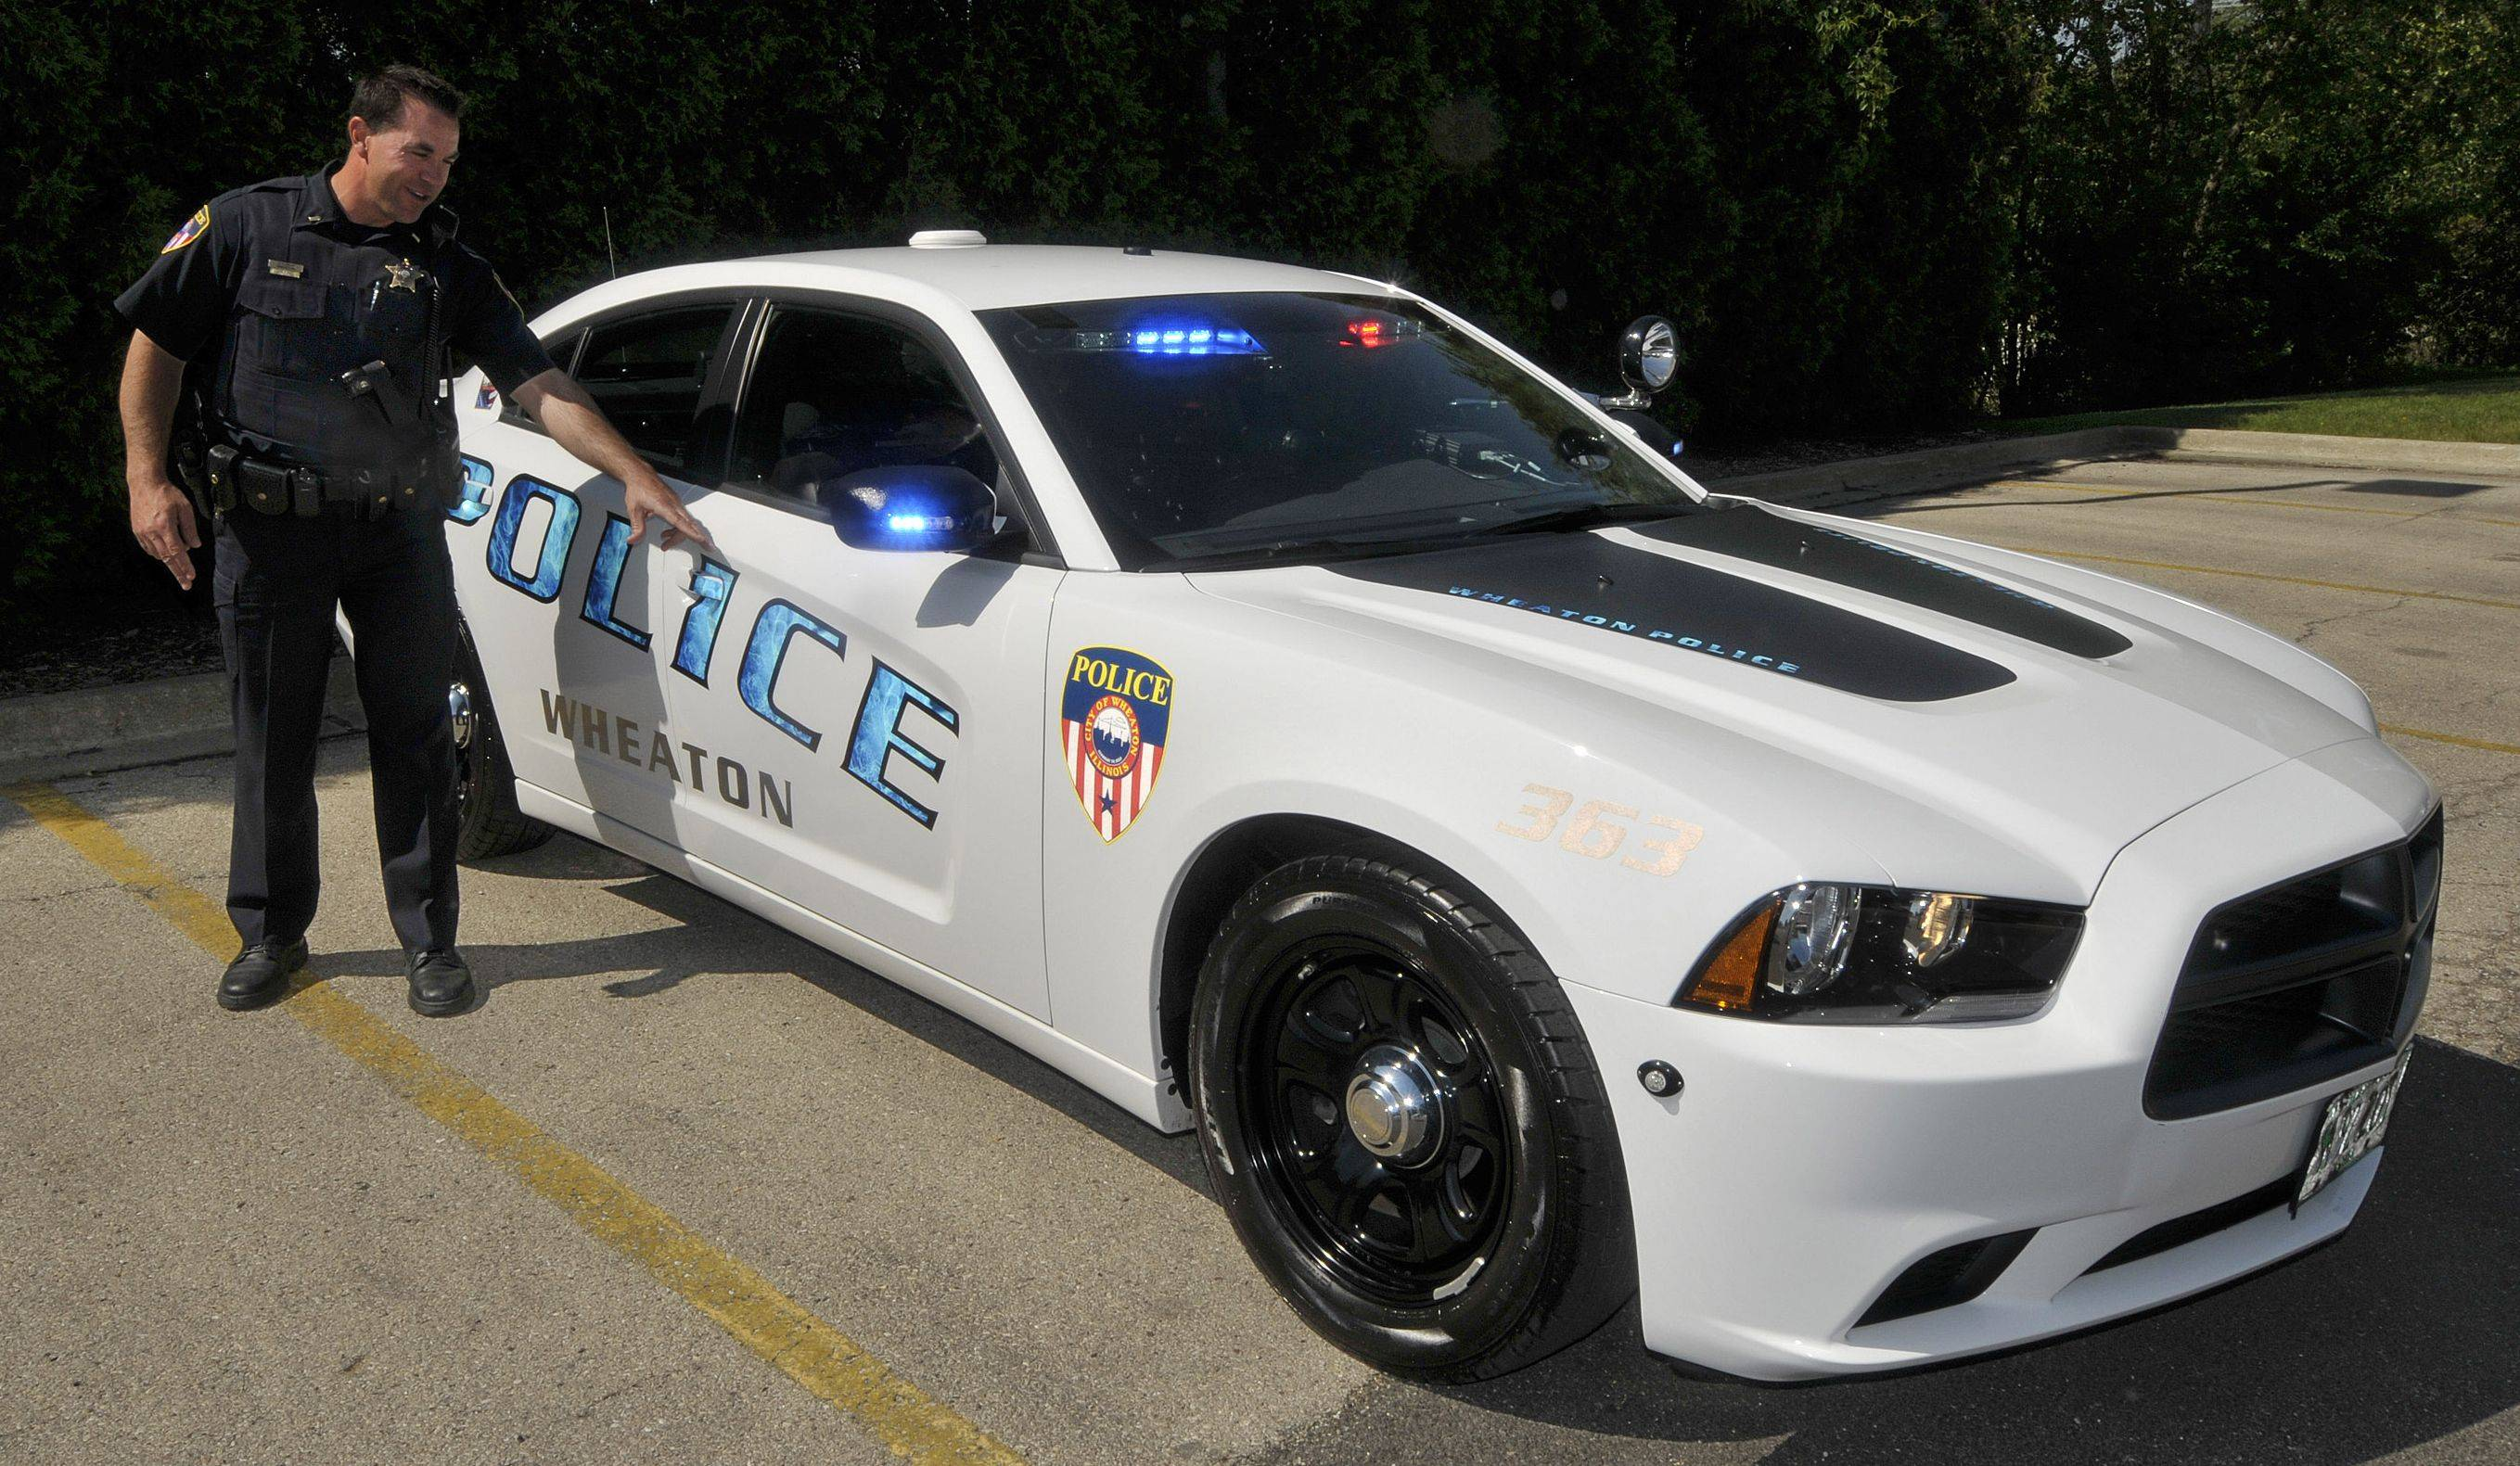 Wheaton police officers show off their new squad car, a Dodge Charger. It has features not possible on their old Ford Crown Victorias, and the new paint scheme follows the curves of the car body, as pointed out by Lt. Robert Miller.